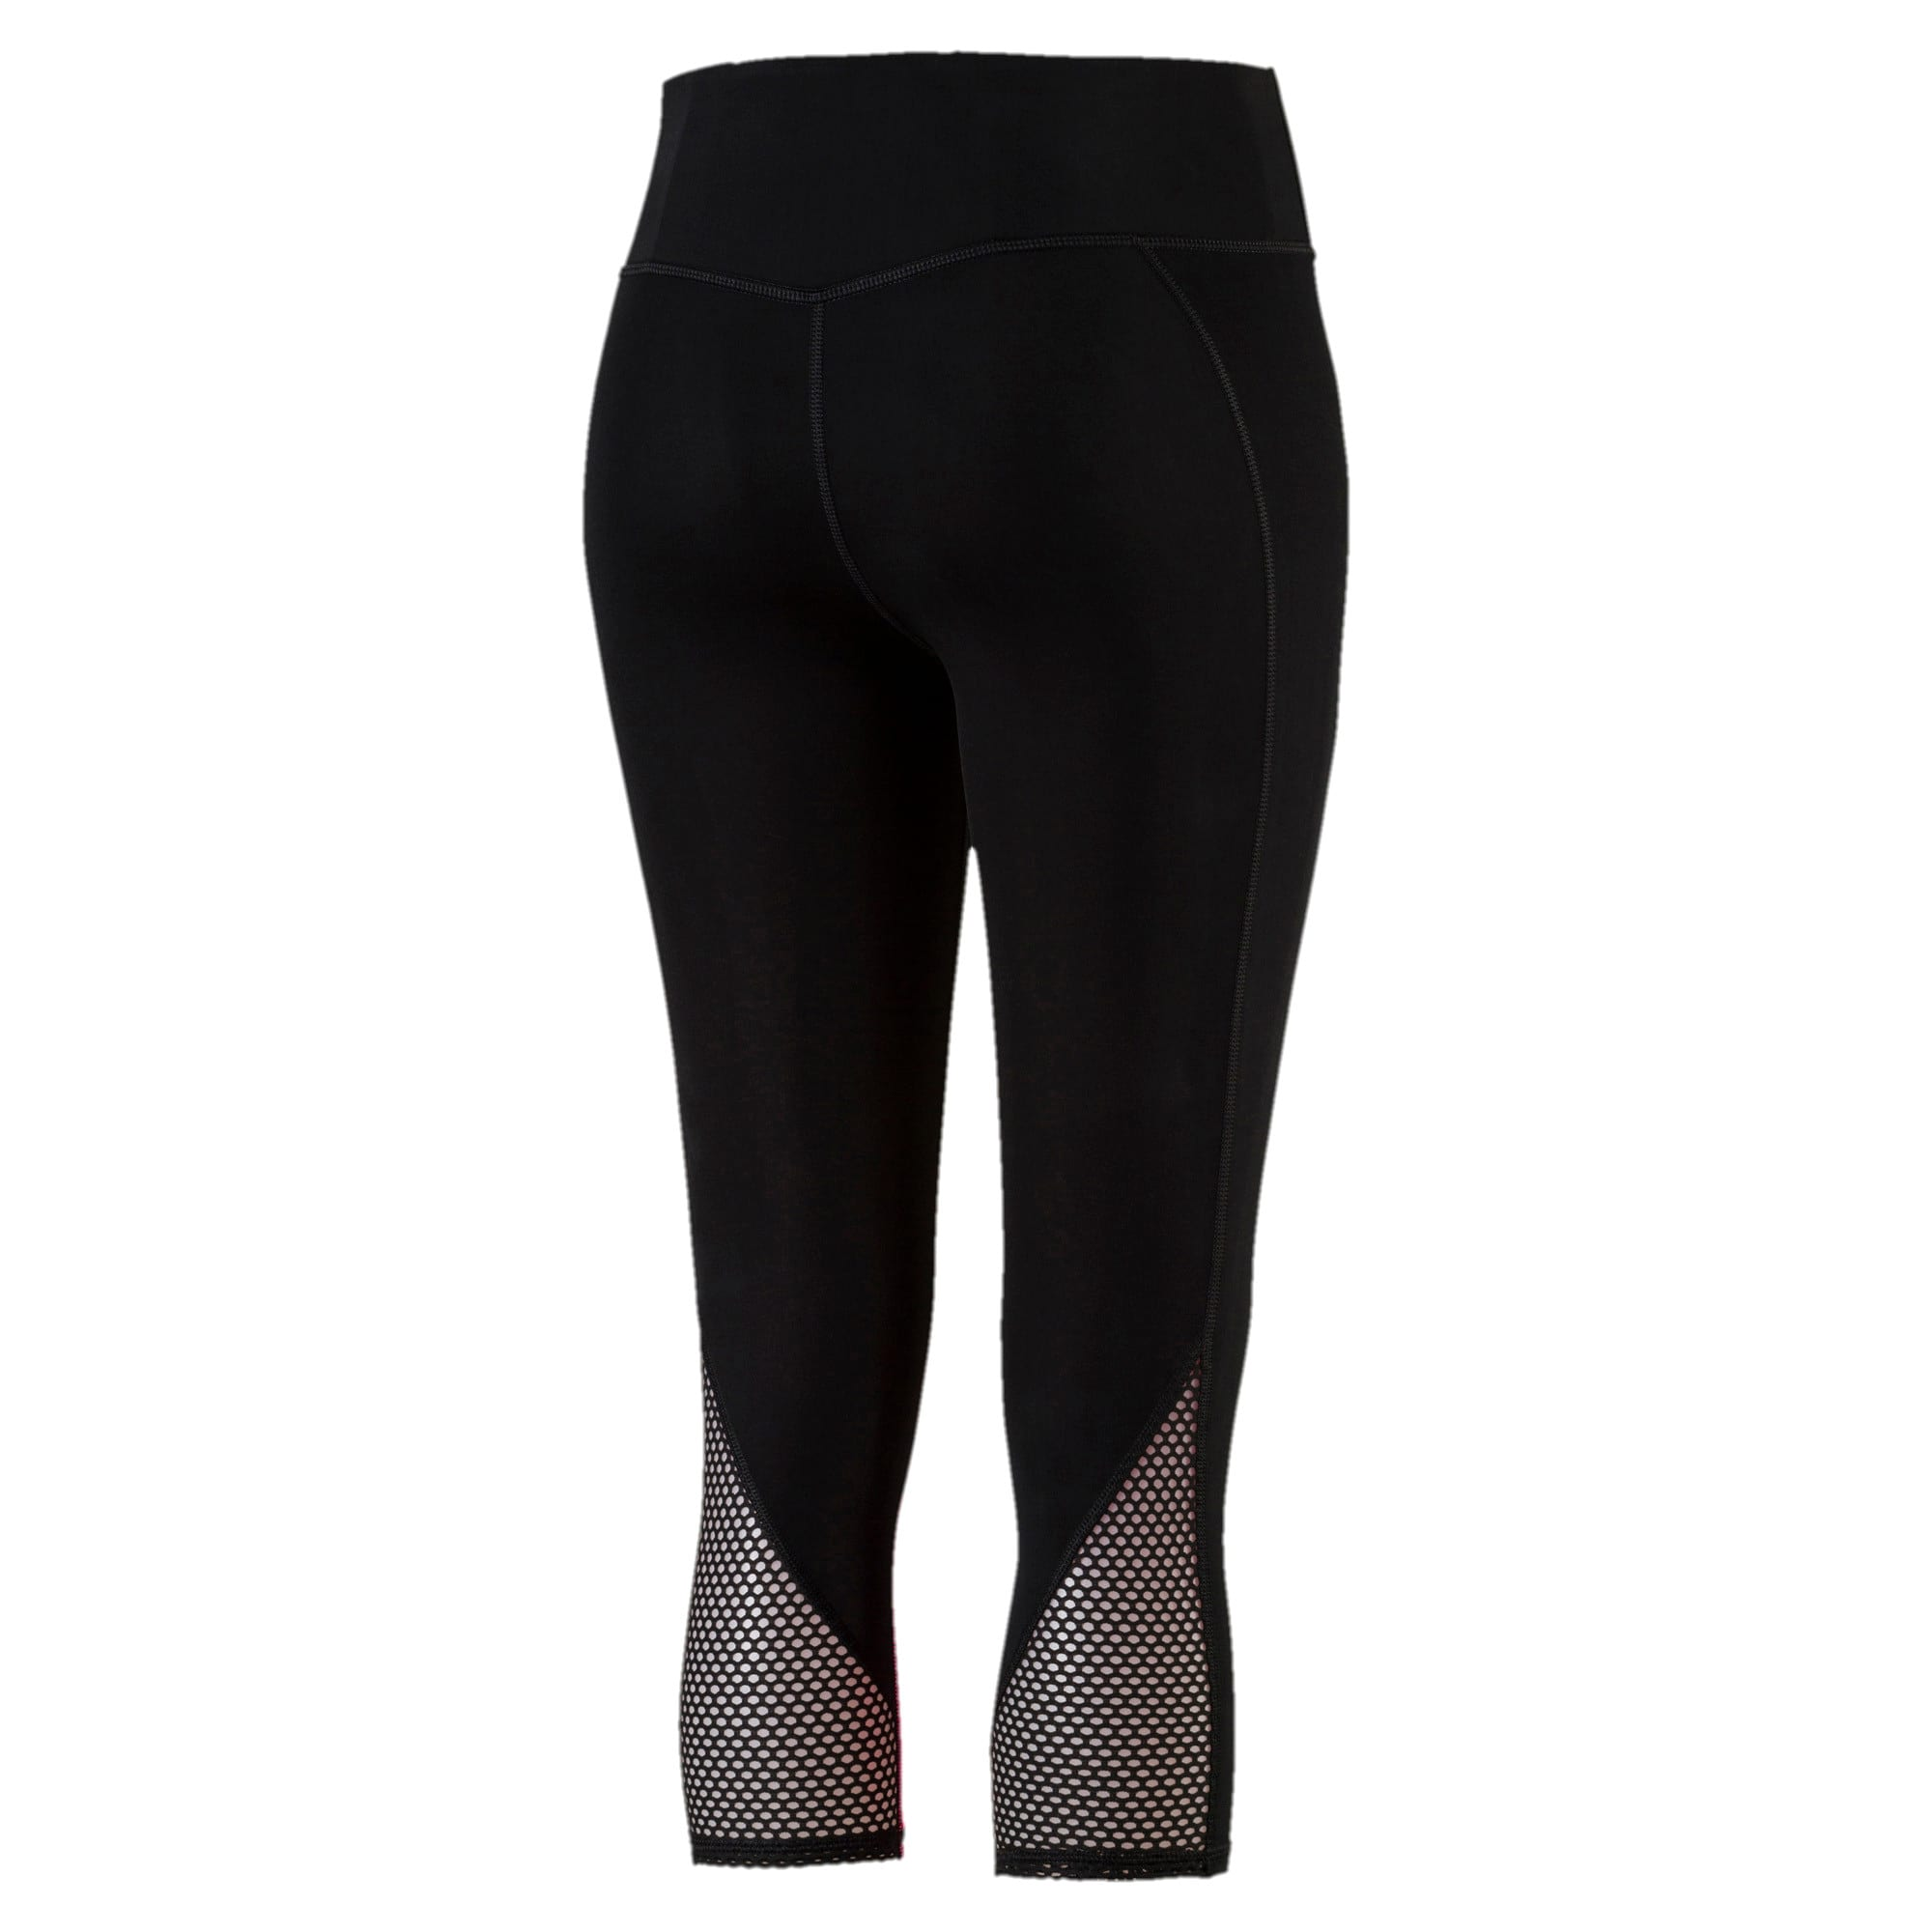 Thumbnail 5 of Active Training Women's Explosive 3/4 Tights, Puma Black-KNOCKOUT PINK, medium-IND